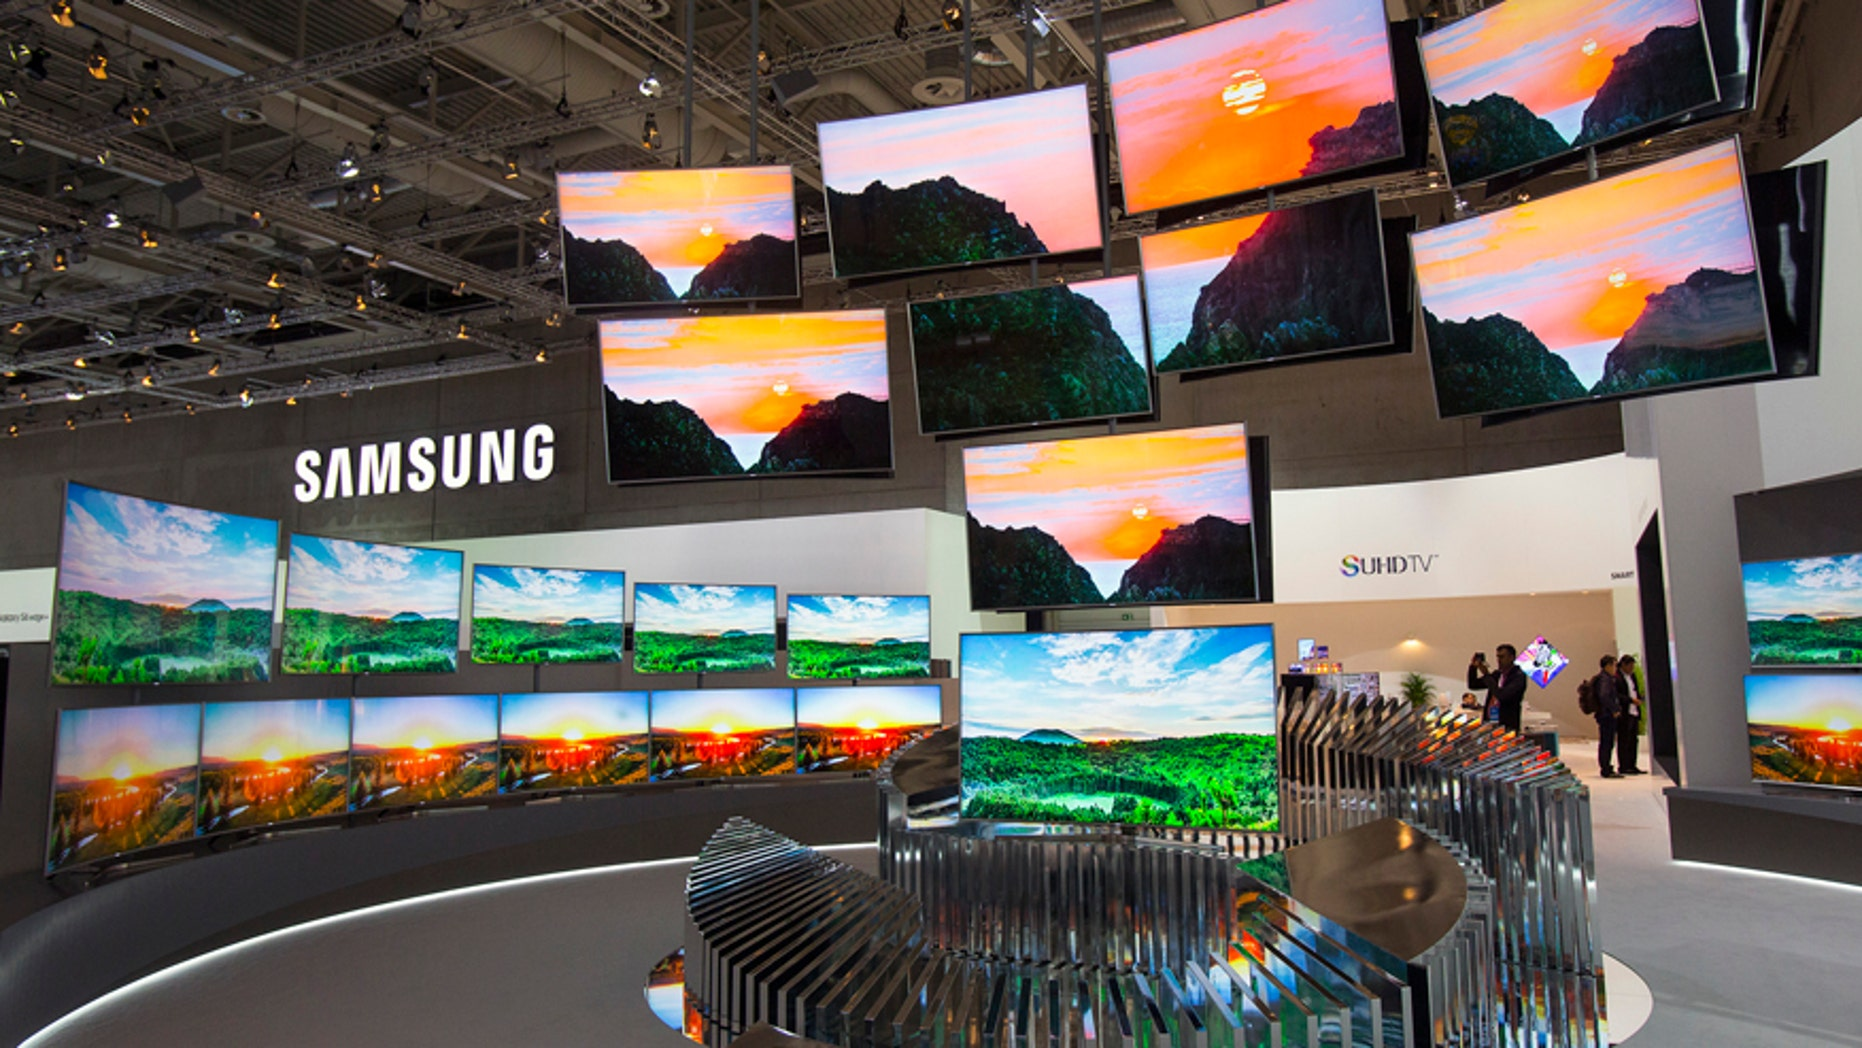 Samsung UHDTV curved flatscreens are pictured at the consumer electronics trade fair IFA in Berlin, Germany, September 3, 2015. REUTERS/Hannibal Hanschke - RTX1QWE9